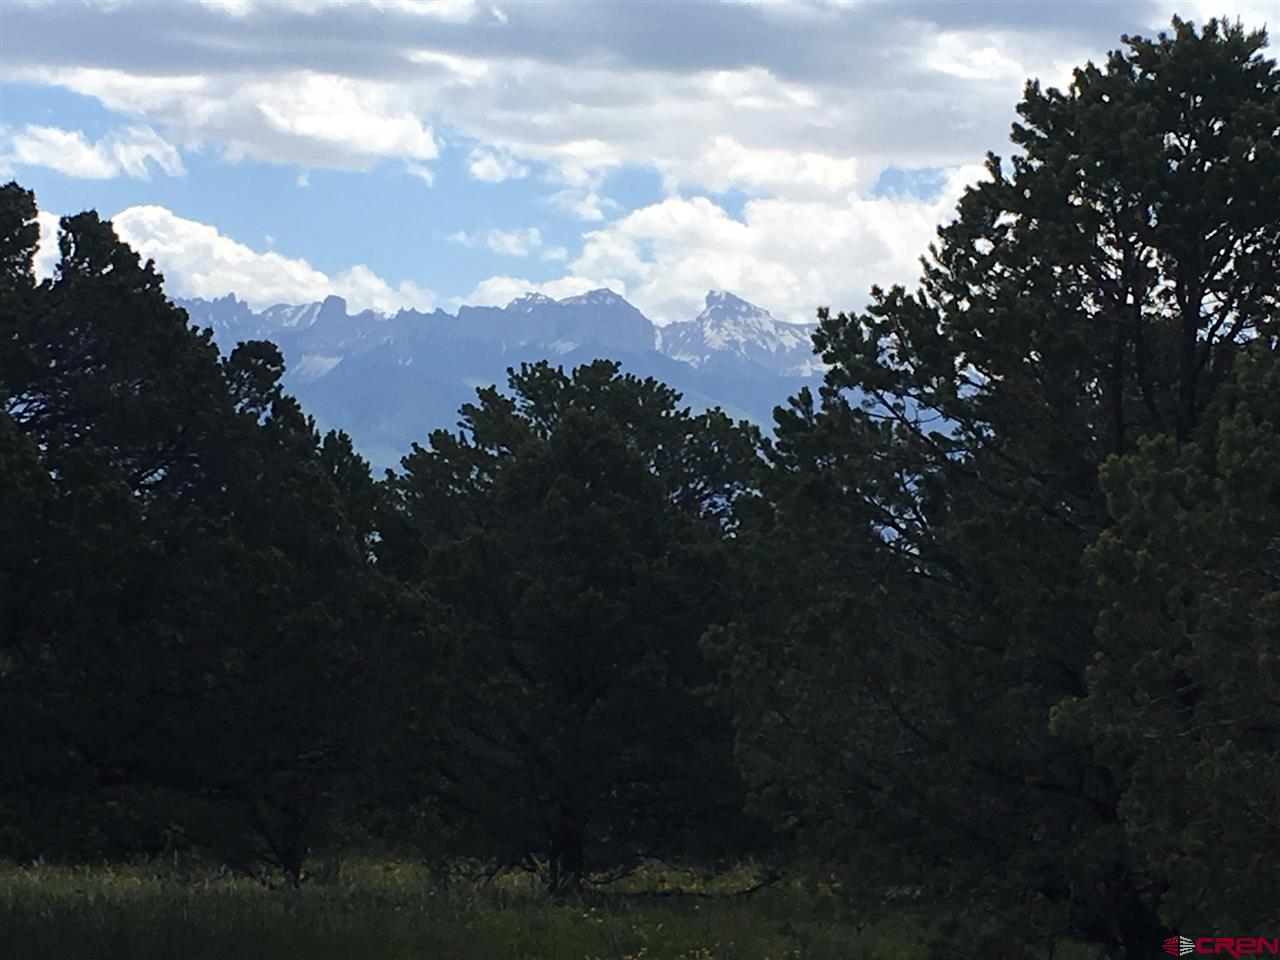 2-5 acre lots available at an affordable price.  The lots are adjacent to each other at the end of Cedar Lane East.  The lots have fantastic Cimarron and Mesa views - some from ground level but most you will capture from a second story.  Privacy with cul-de-sac location.  These are gently sloped up to the south with beautiful trees. They back up to the Loghill Village open space making each lot feel much larger.  Water taps are paid and included in the Purchase Price.  An engineered septic would be required to build.